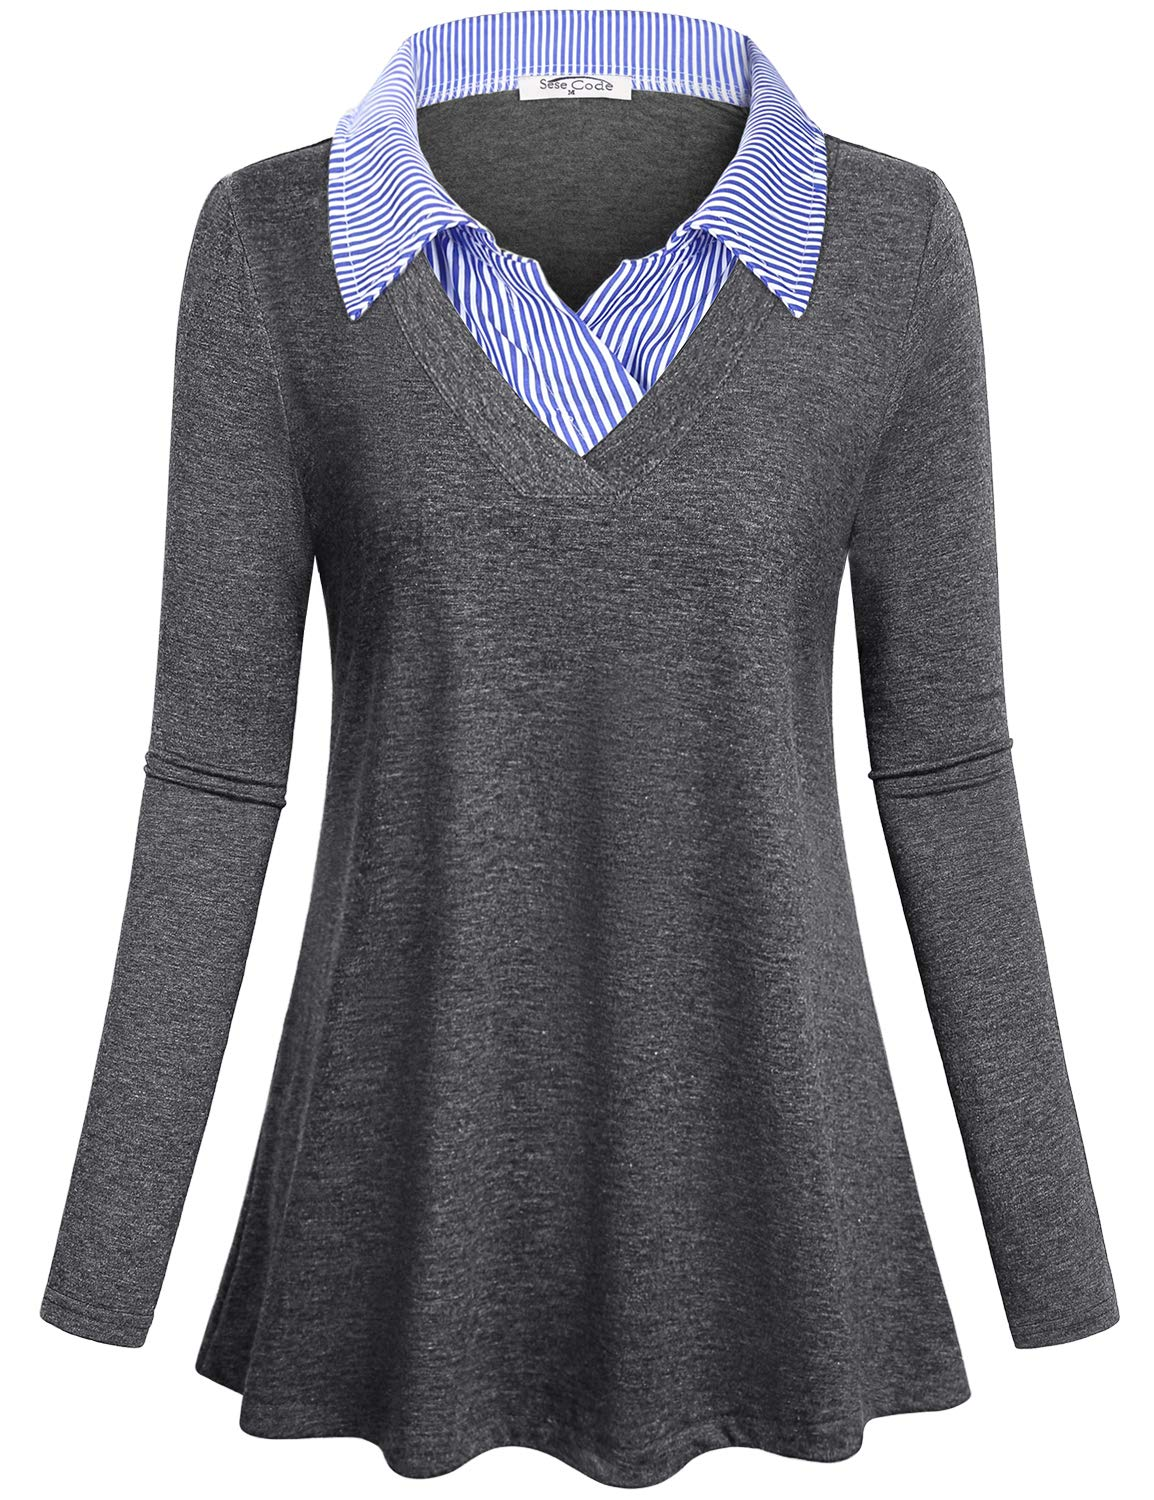 SeSe Code Long Sleeve Blouse Women Baggy V Neck Shirts Ruched Draped Petite Tops Turn Down Collar Contrast Color Delicate Beautiful Unique Office Work Clothes Grey M